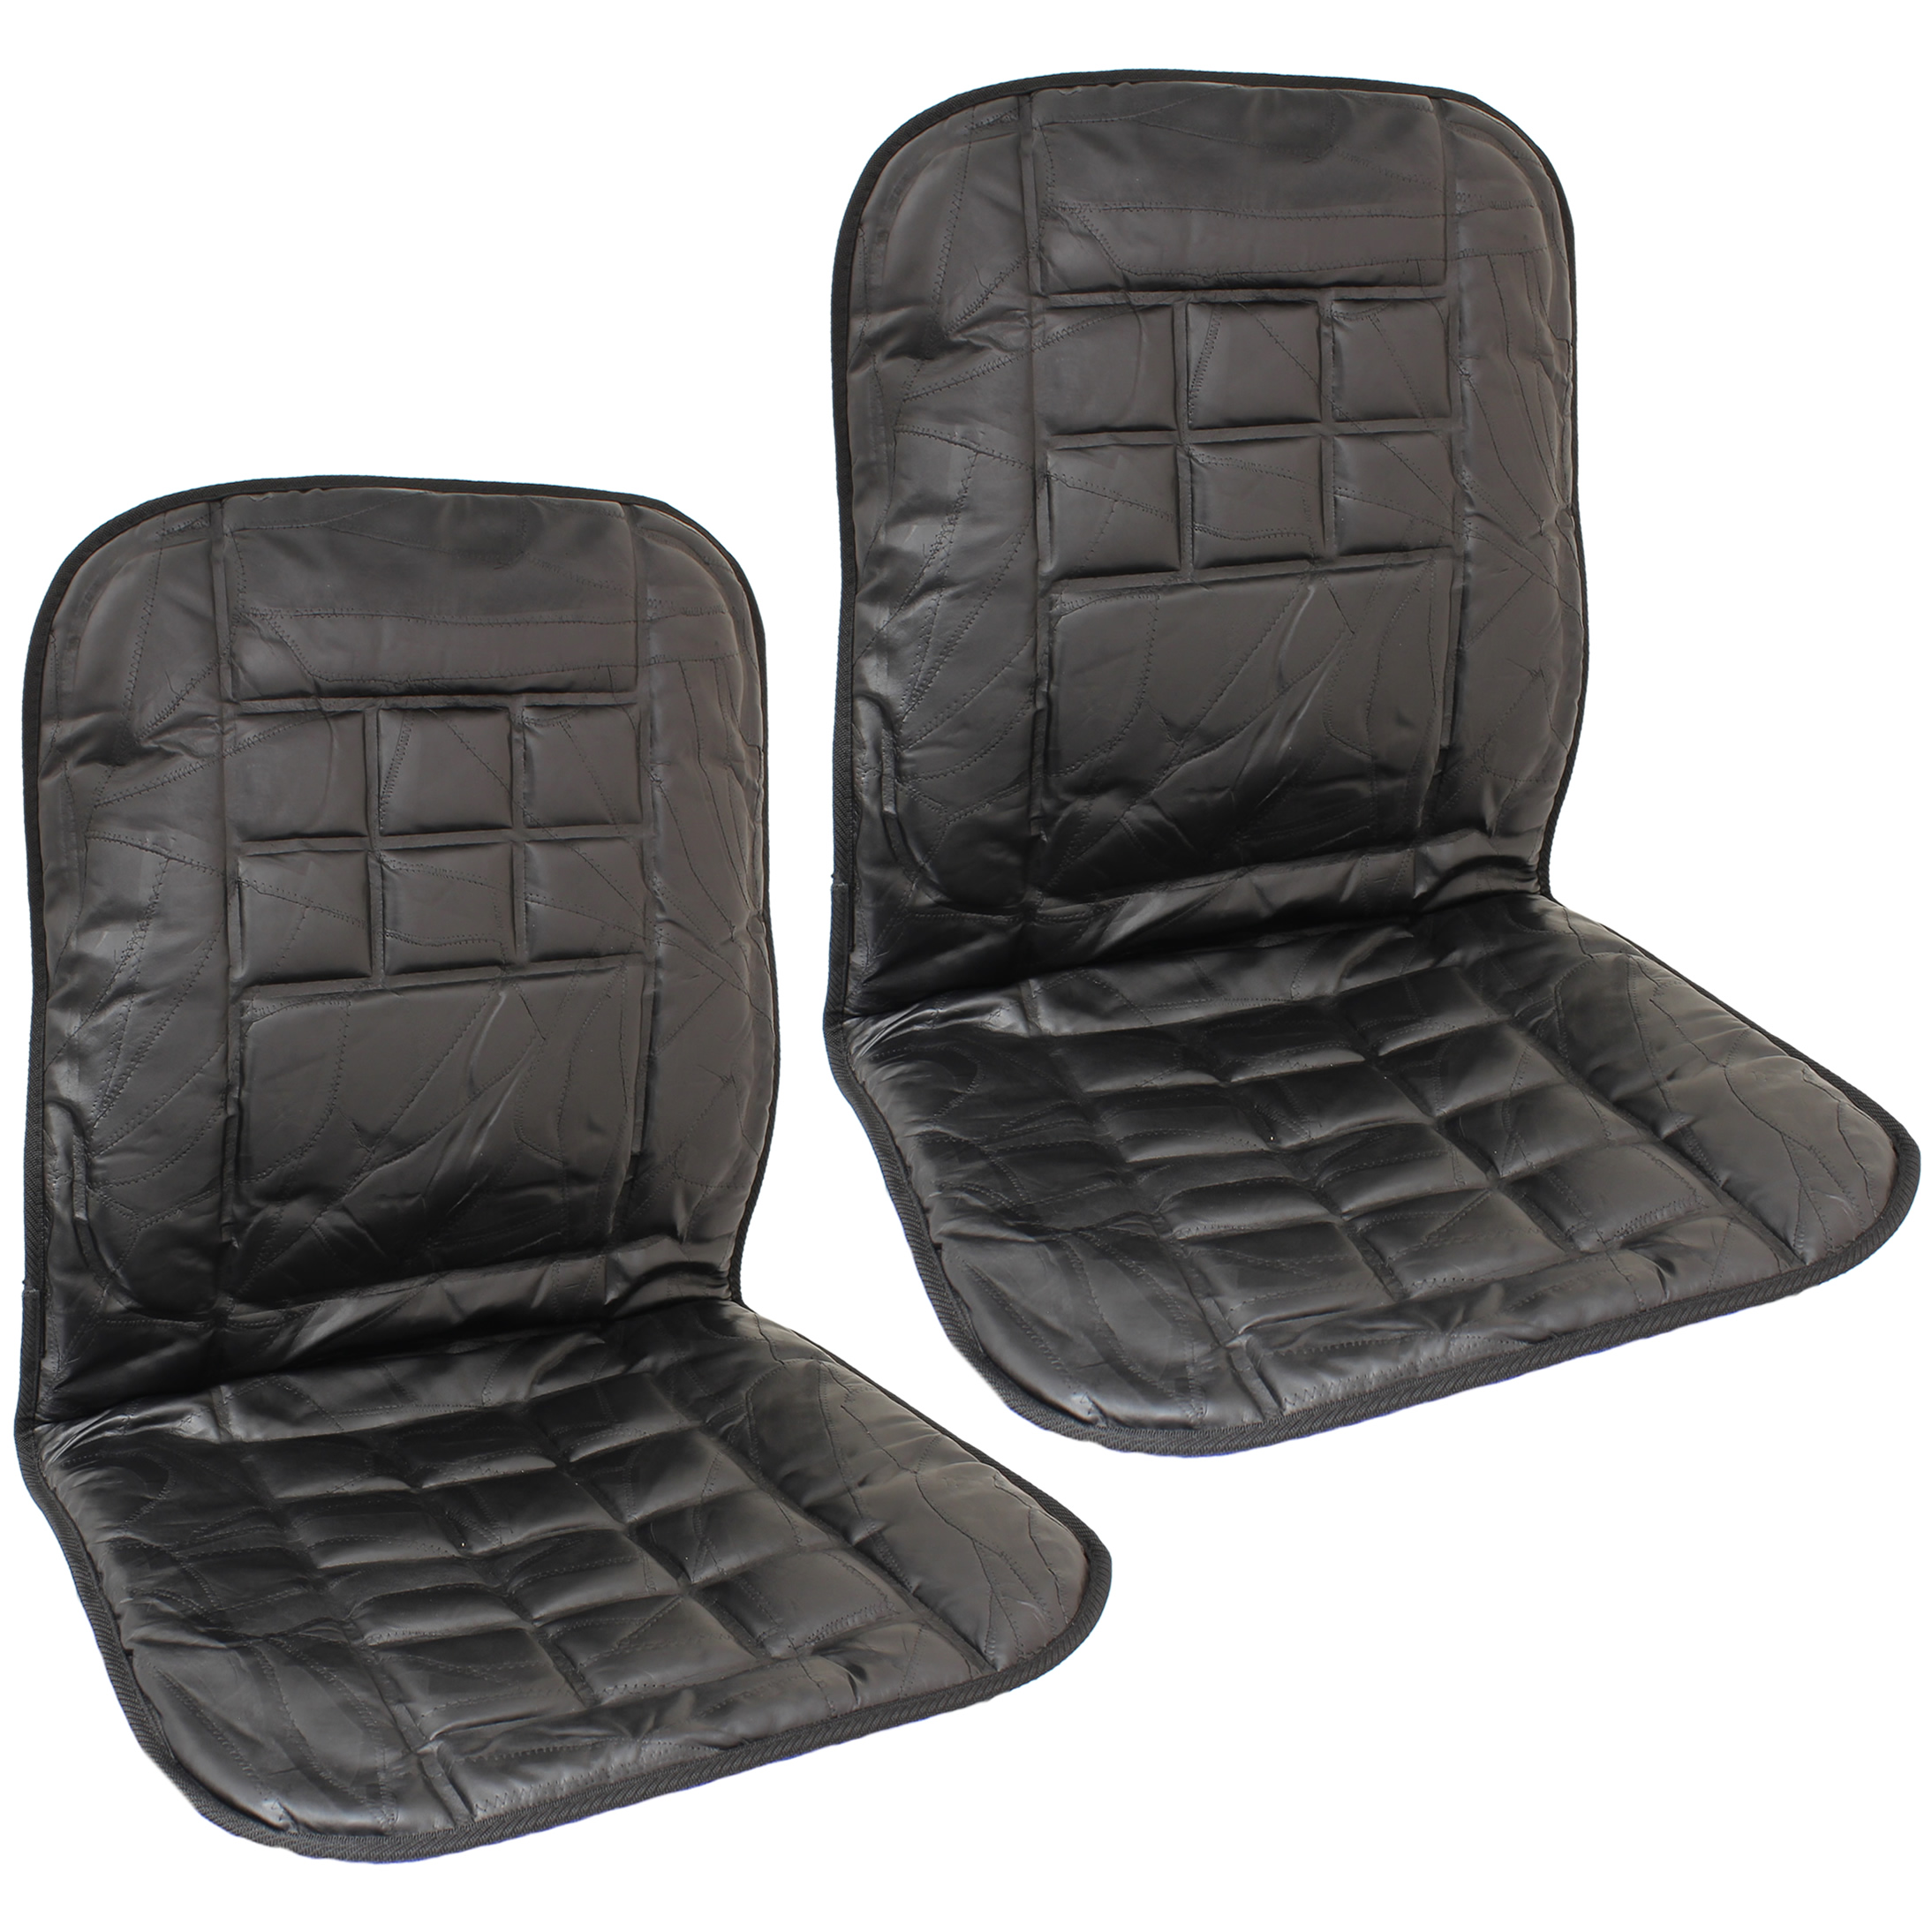 2x leather car taxi van front seat cushion orthopaedic back support massage pair ebay. Black Bedroom Furniture Sets. Home Design Ideas